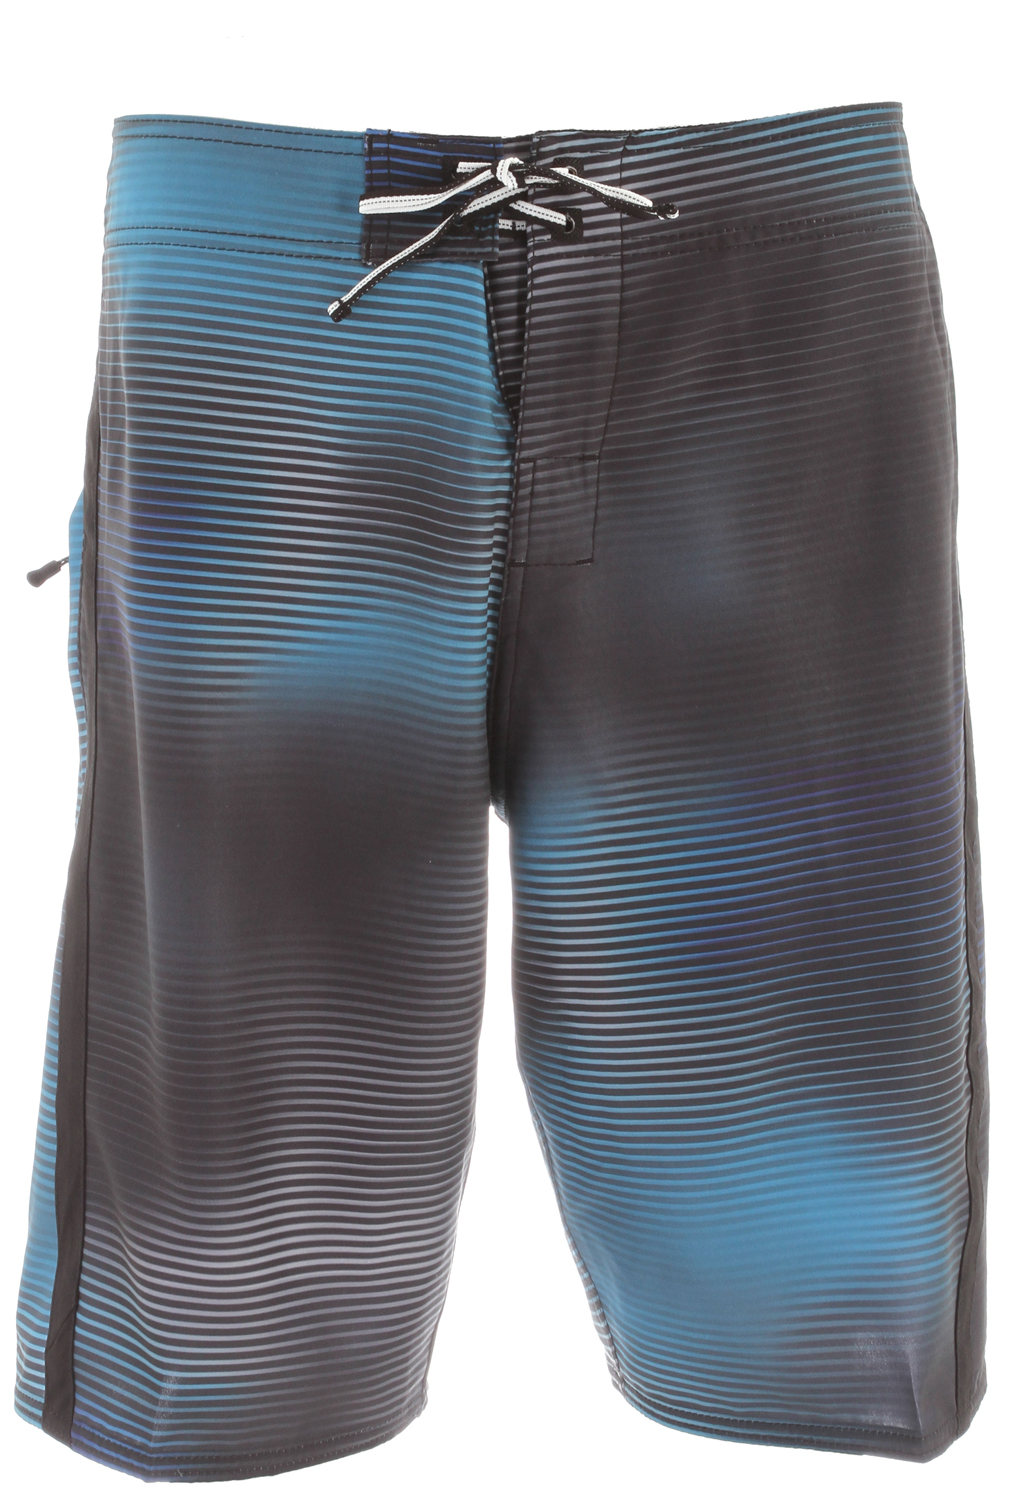 "Surf Key Features of the DC Nucleus Boardshorts: 4-Way Mechanical Stretch +Engineered Novelty Print Zip Pocket Neo Fly Embroidered Eyelets Lycra Lined Bottom Hems & Front Rise Seamless Side Panels Customized Trim 21"" 100% Polyester - $31.95"